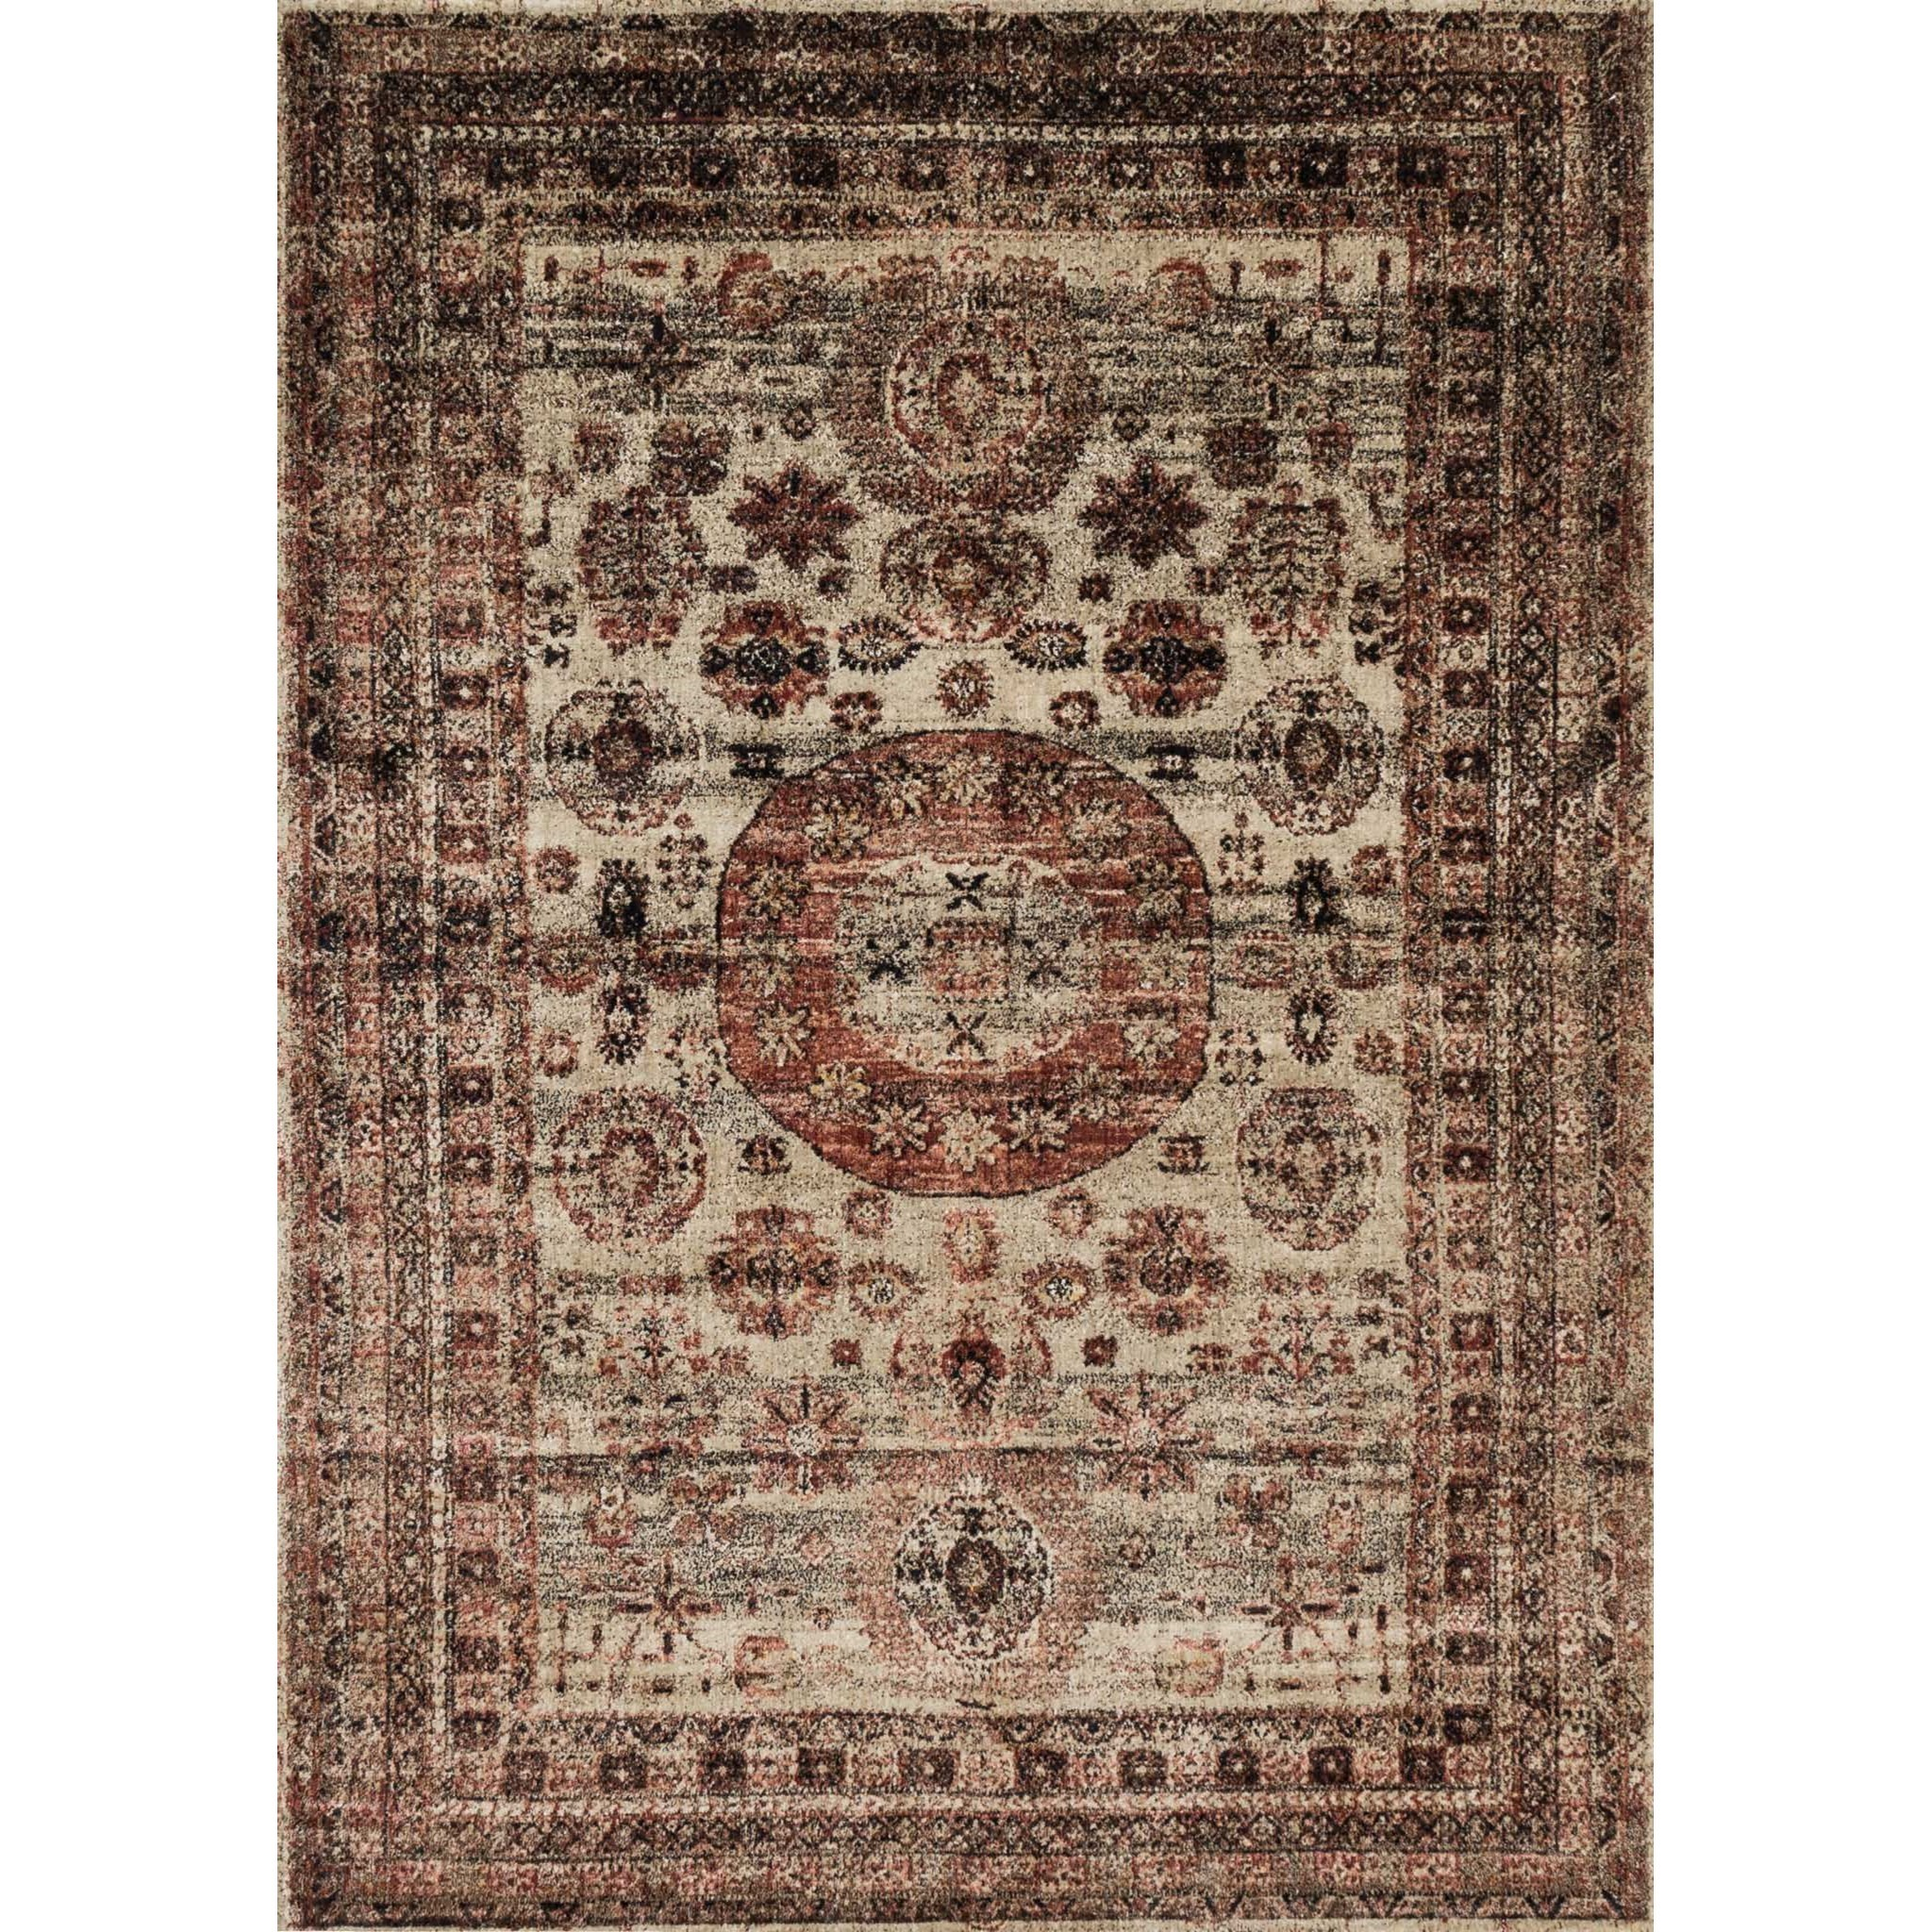 "Anastasia 2'-7"" x 10'-0"" Rug Runner by Loloi Rugs at Virginia Furniture Market"